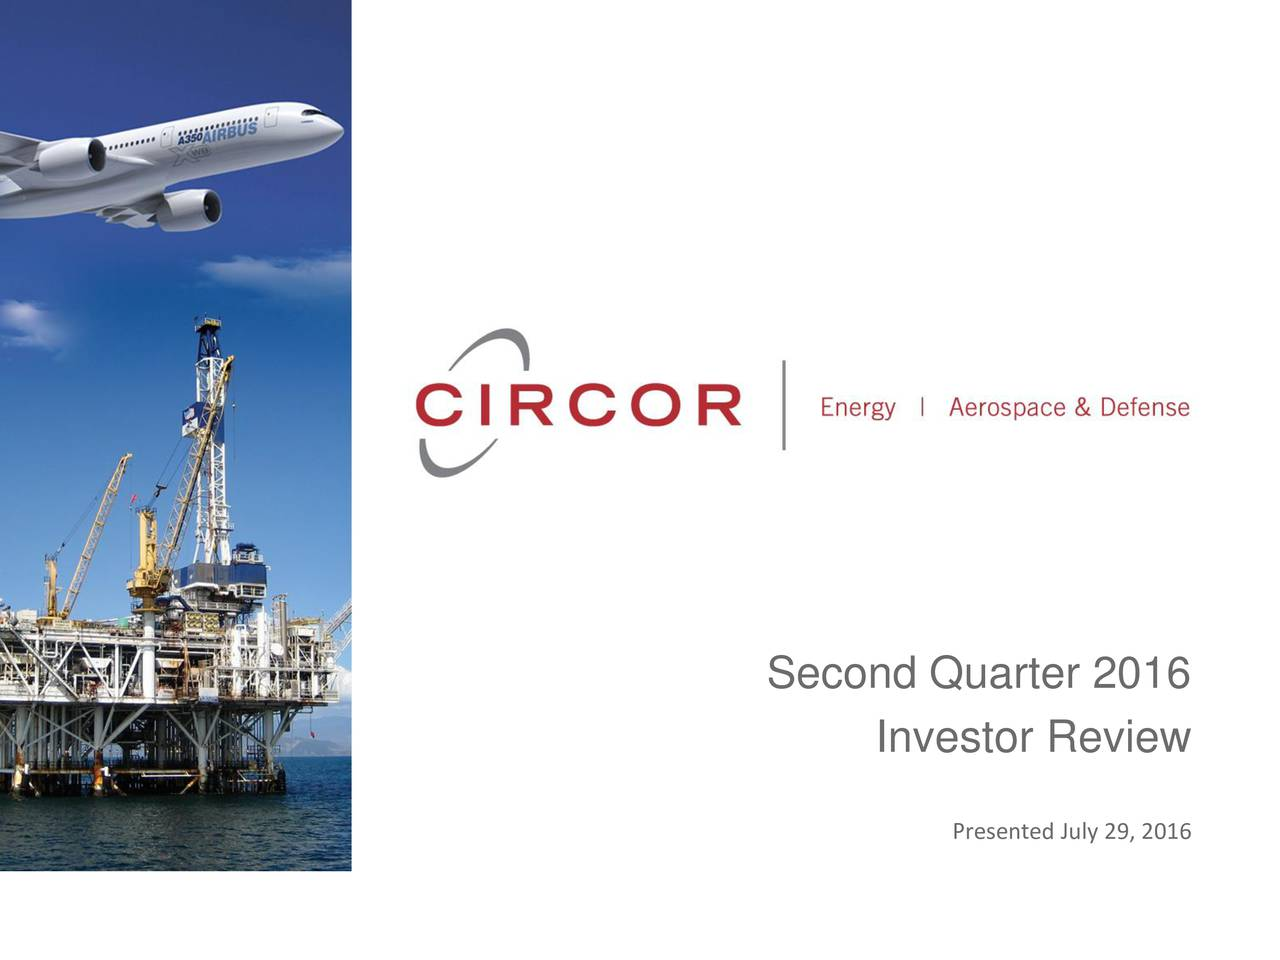 Second Quarter 2016 Investor Review Presented July 29, 2016